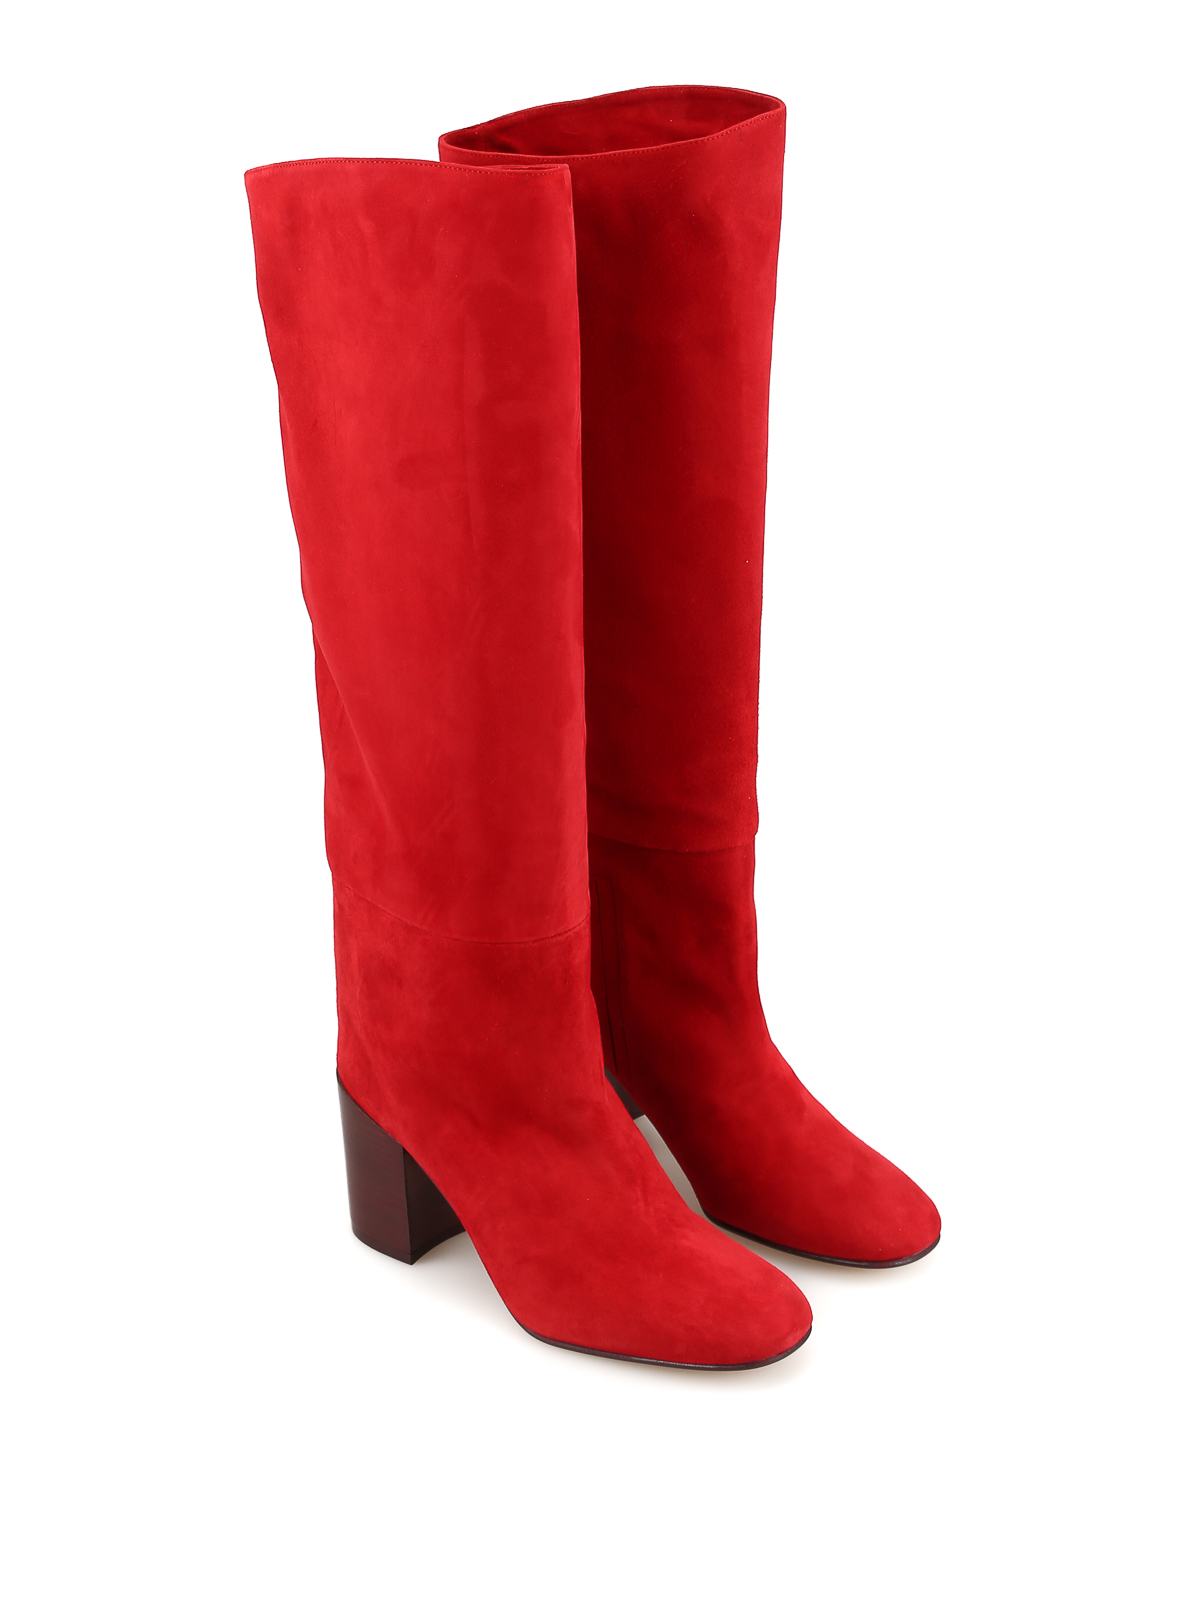 Tubo to-the-knee red suede boots